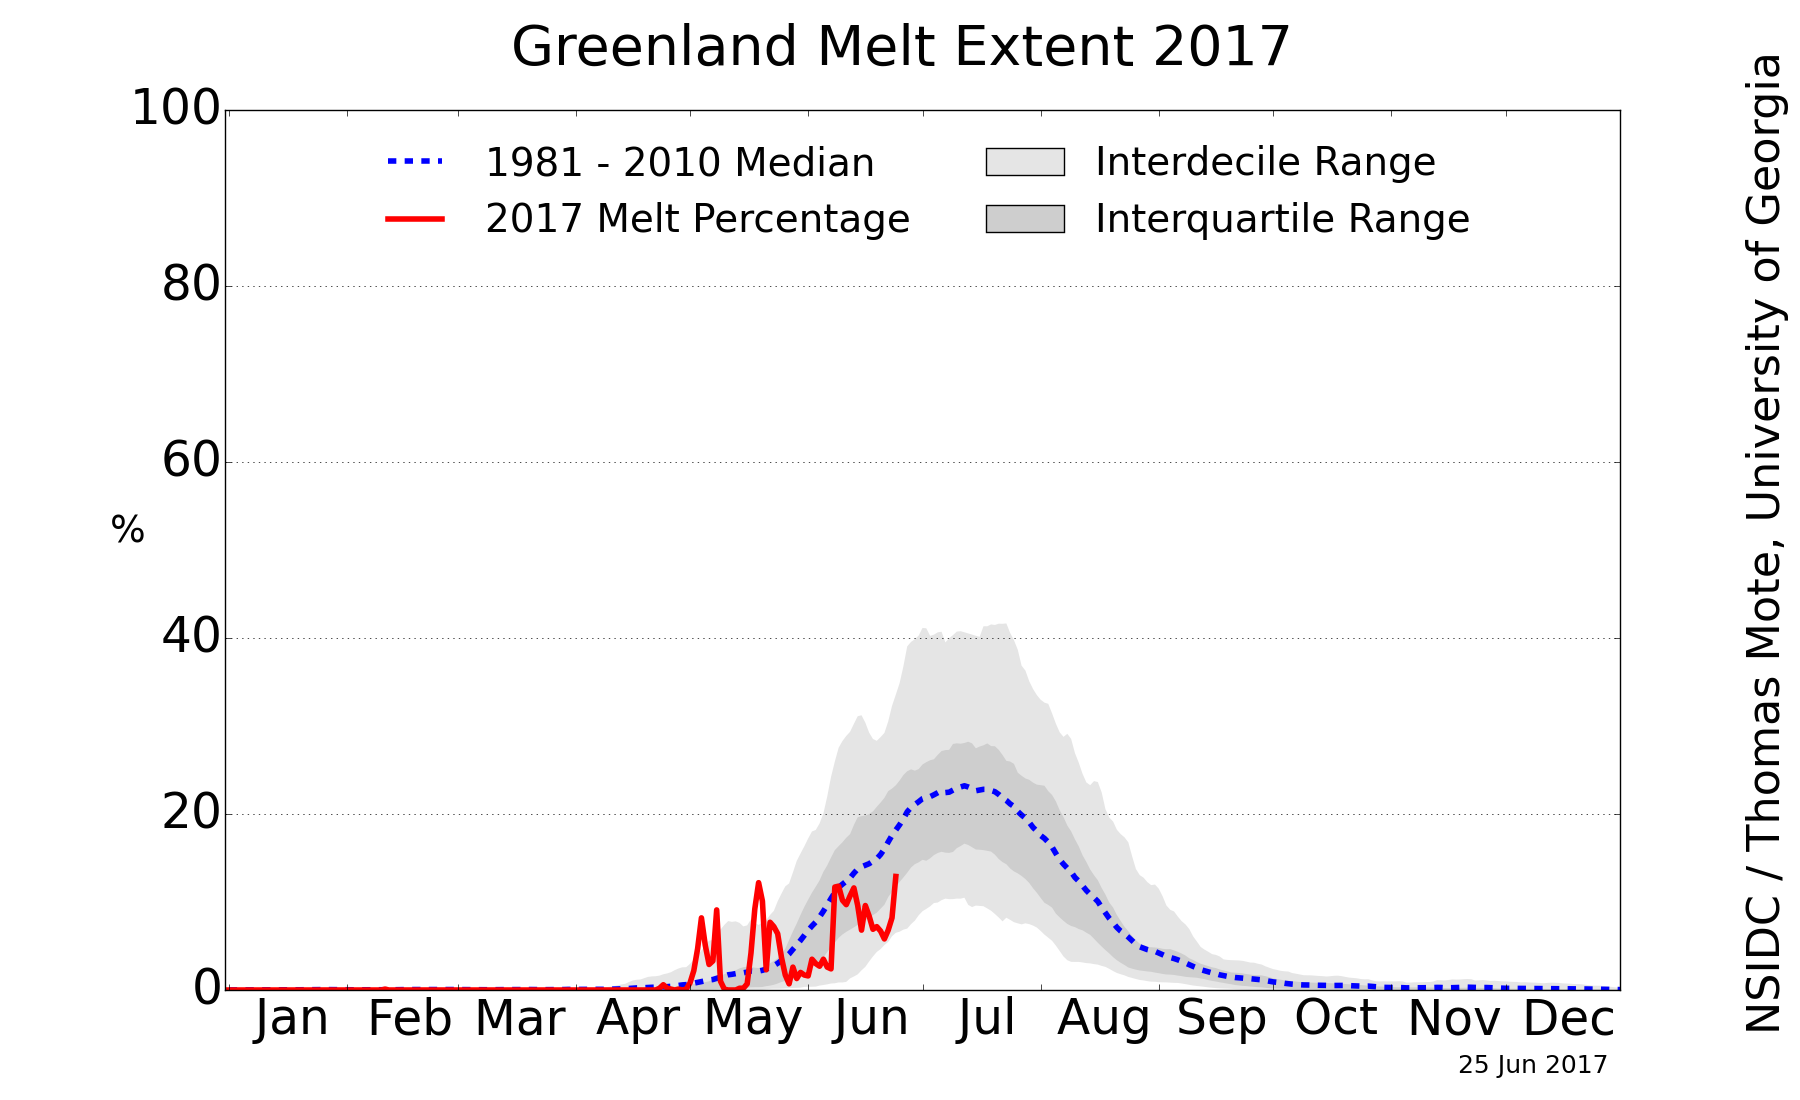 http://nsidc.org/greenland-today/images/greenland_melt_area_plot.png